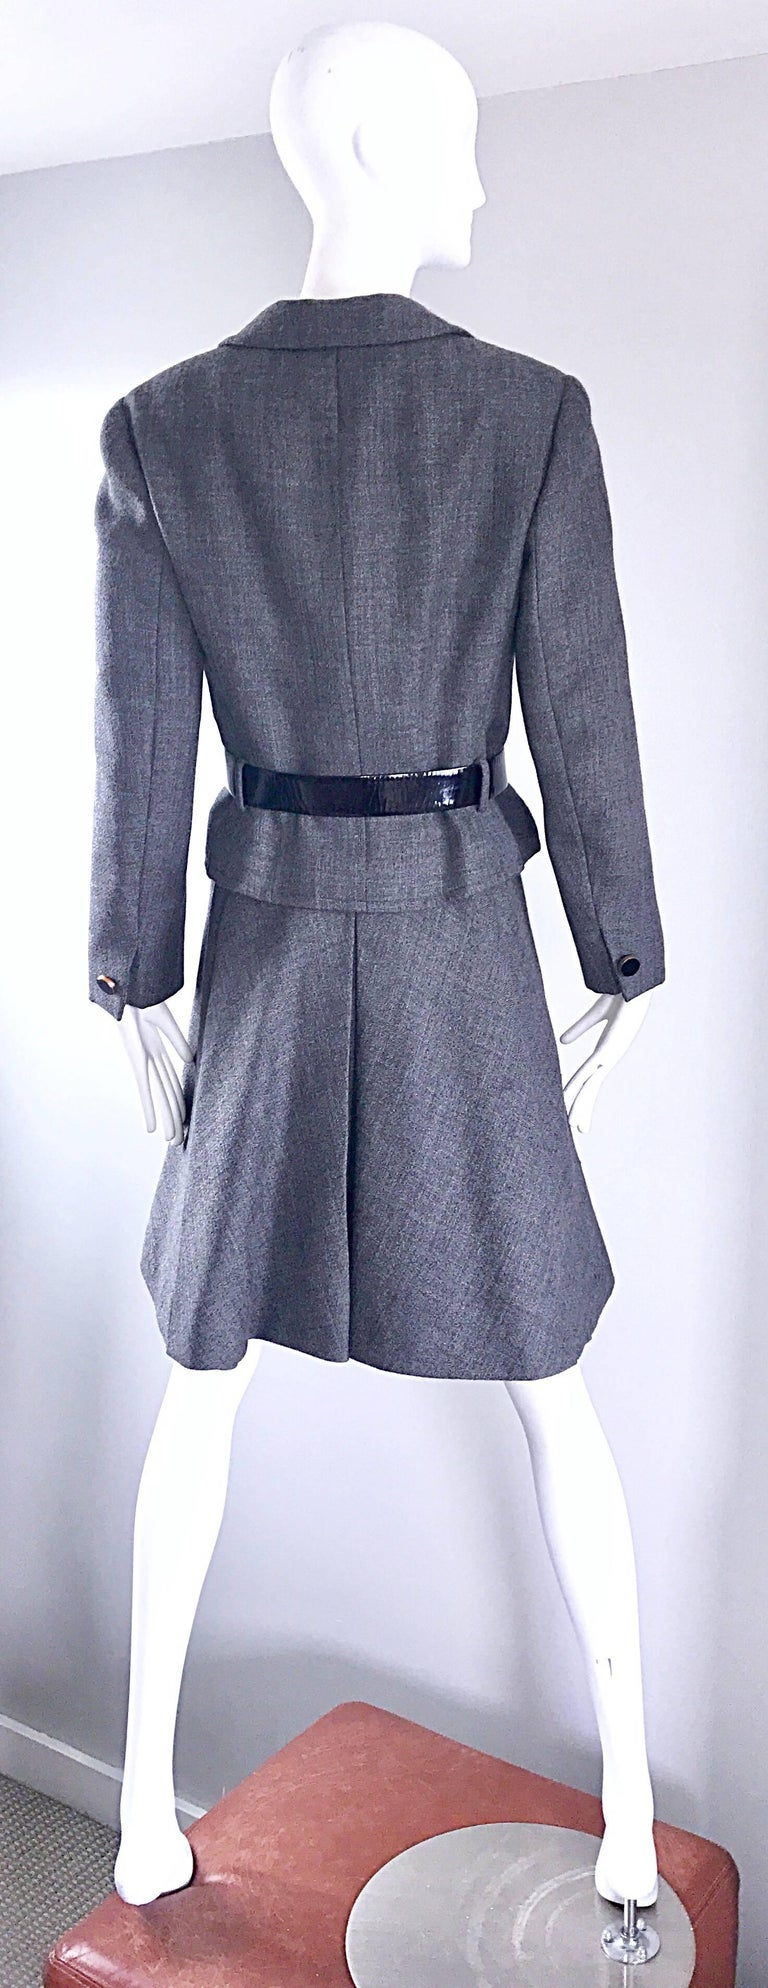 Nina Ricci Haute Couture Vintage Grey Wool Dress and Jacket Ensemble, 1960s   For Sale 2